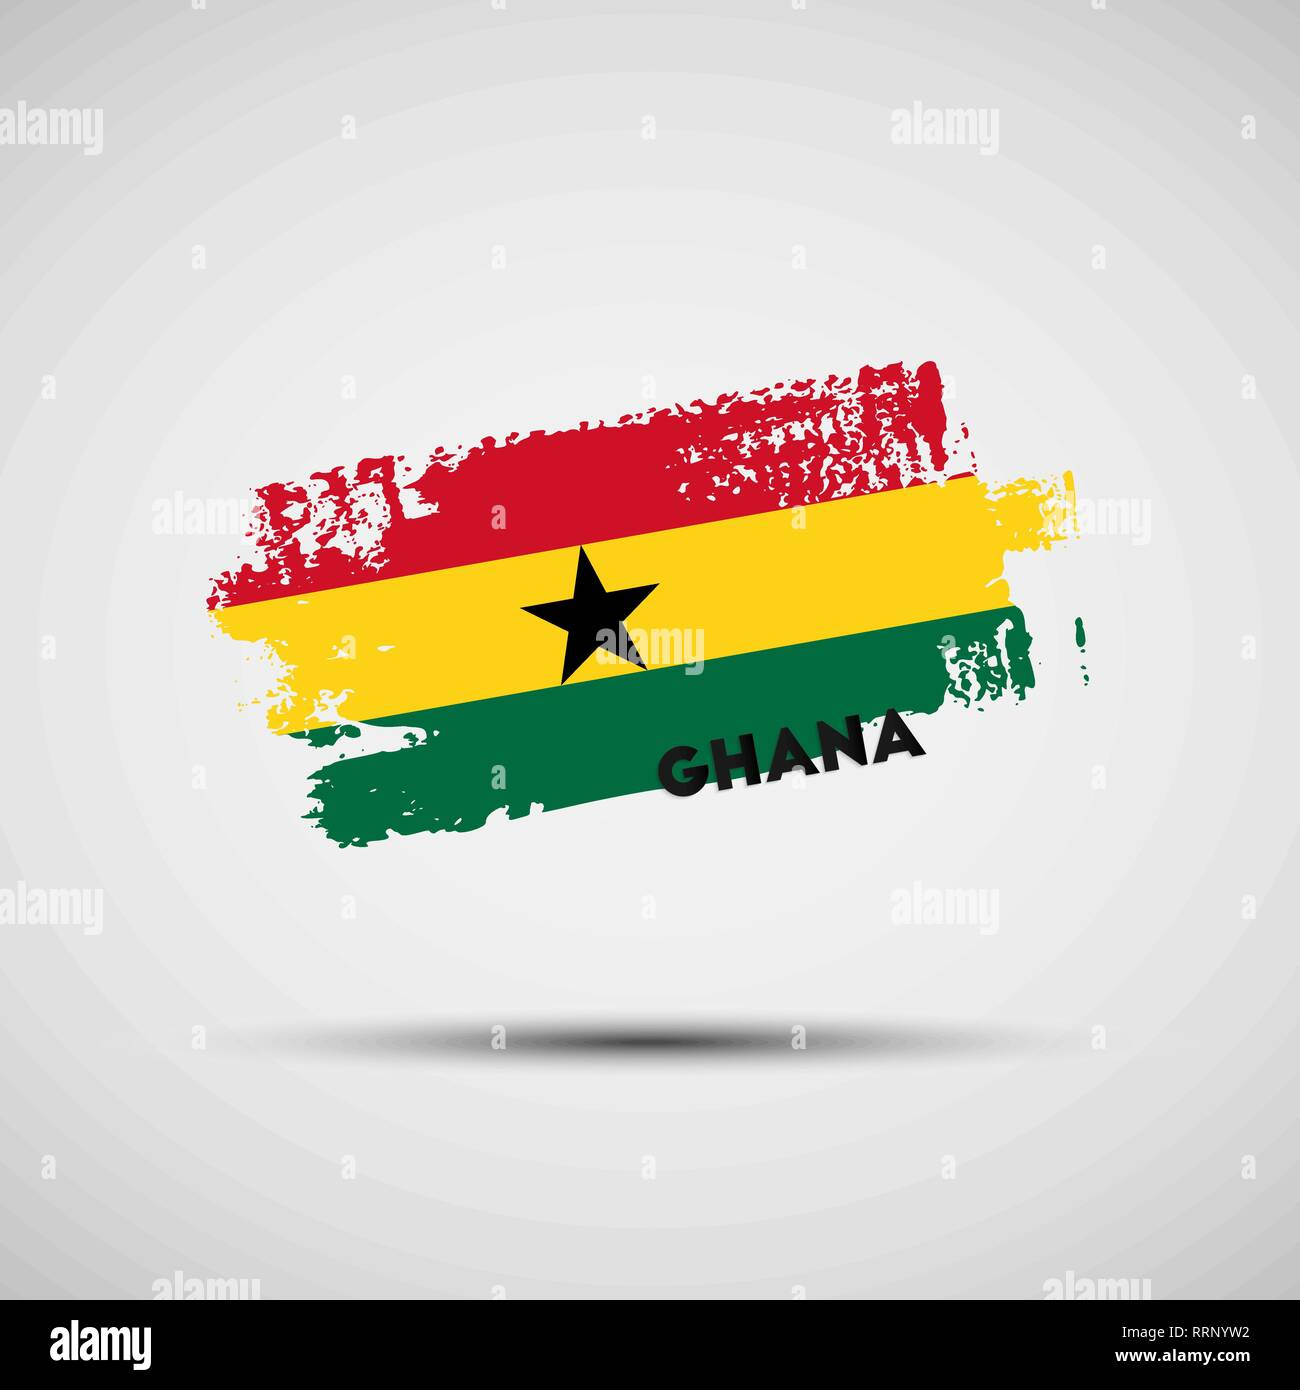 Flag of Ghana. Vector illustration of grunge brush stroke with Ghanaian national flag colors for your graphic and web design - Stock Vector